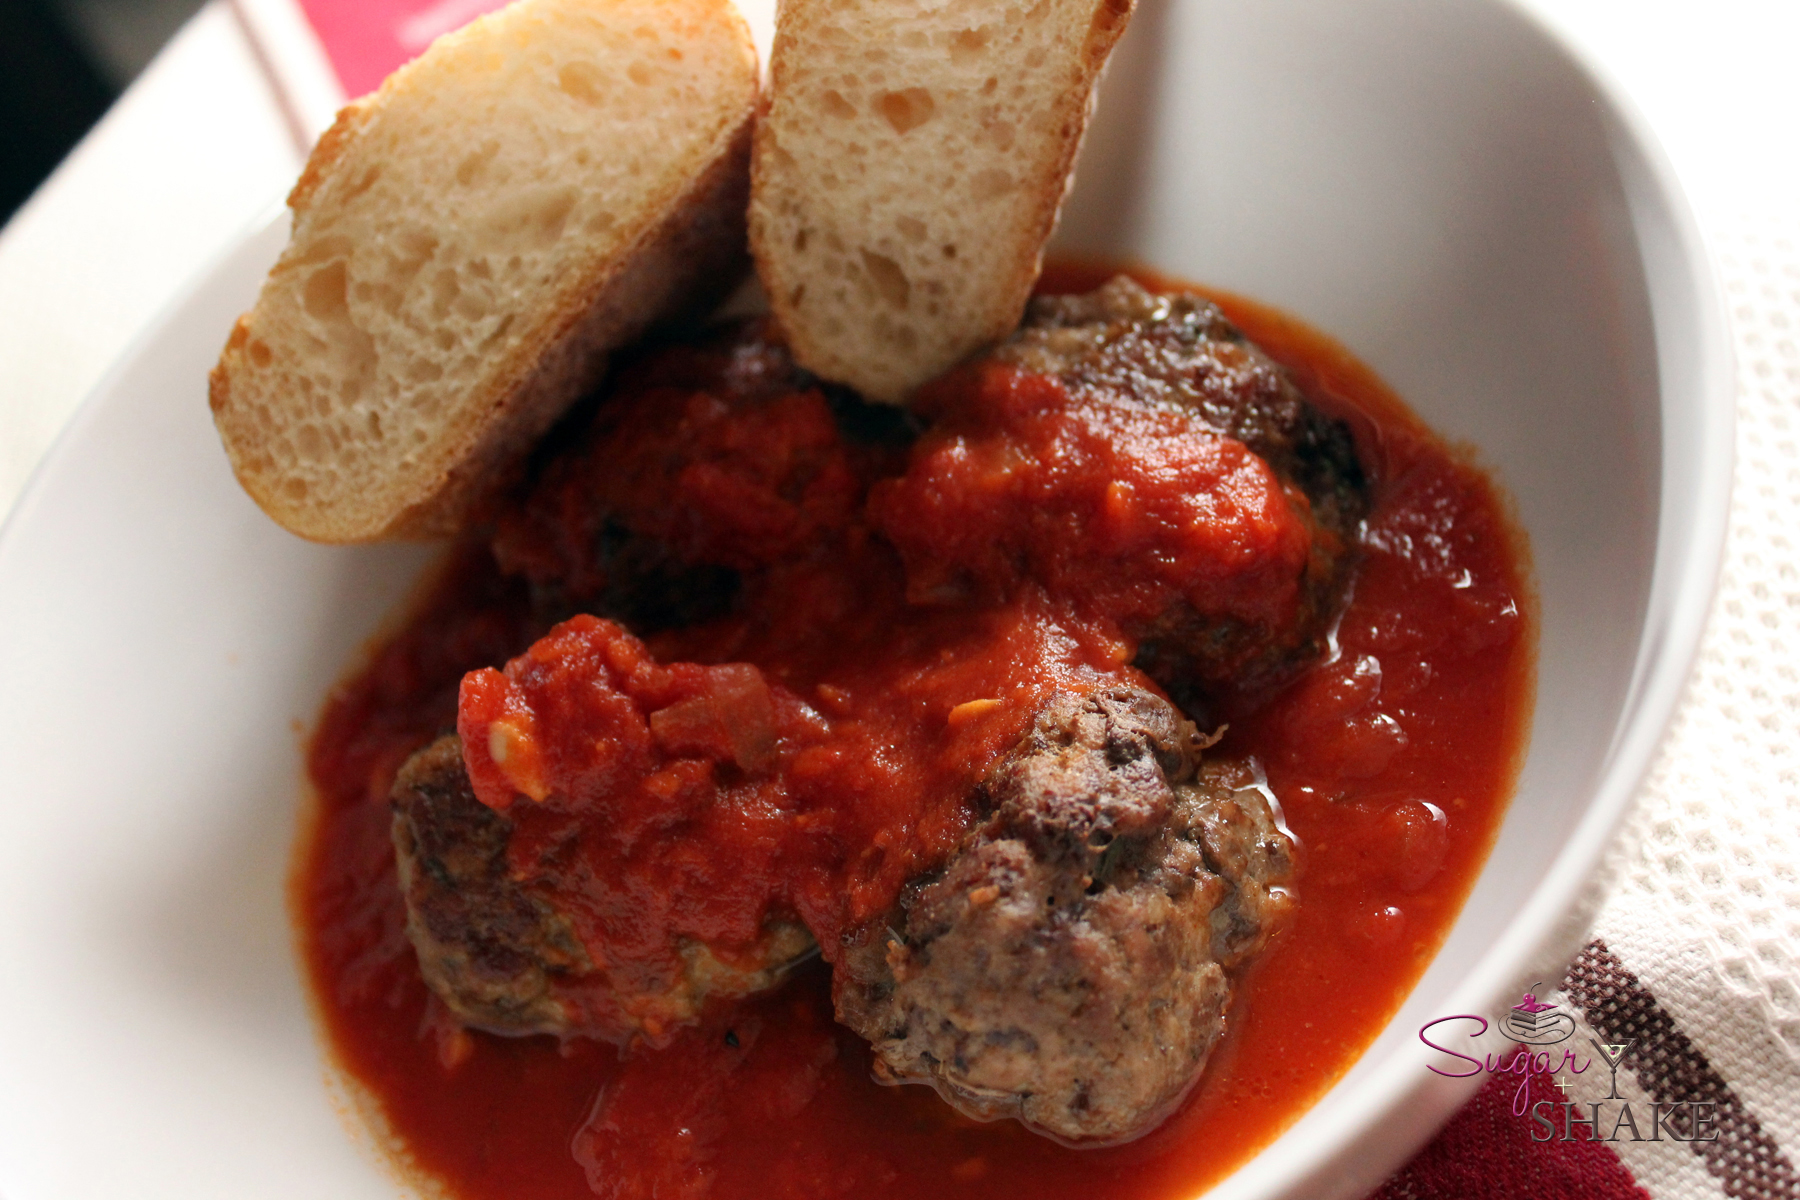 Big Island veal & beef meatballs with homemade marinara sauce. © Sugar + Shake